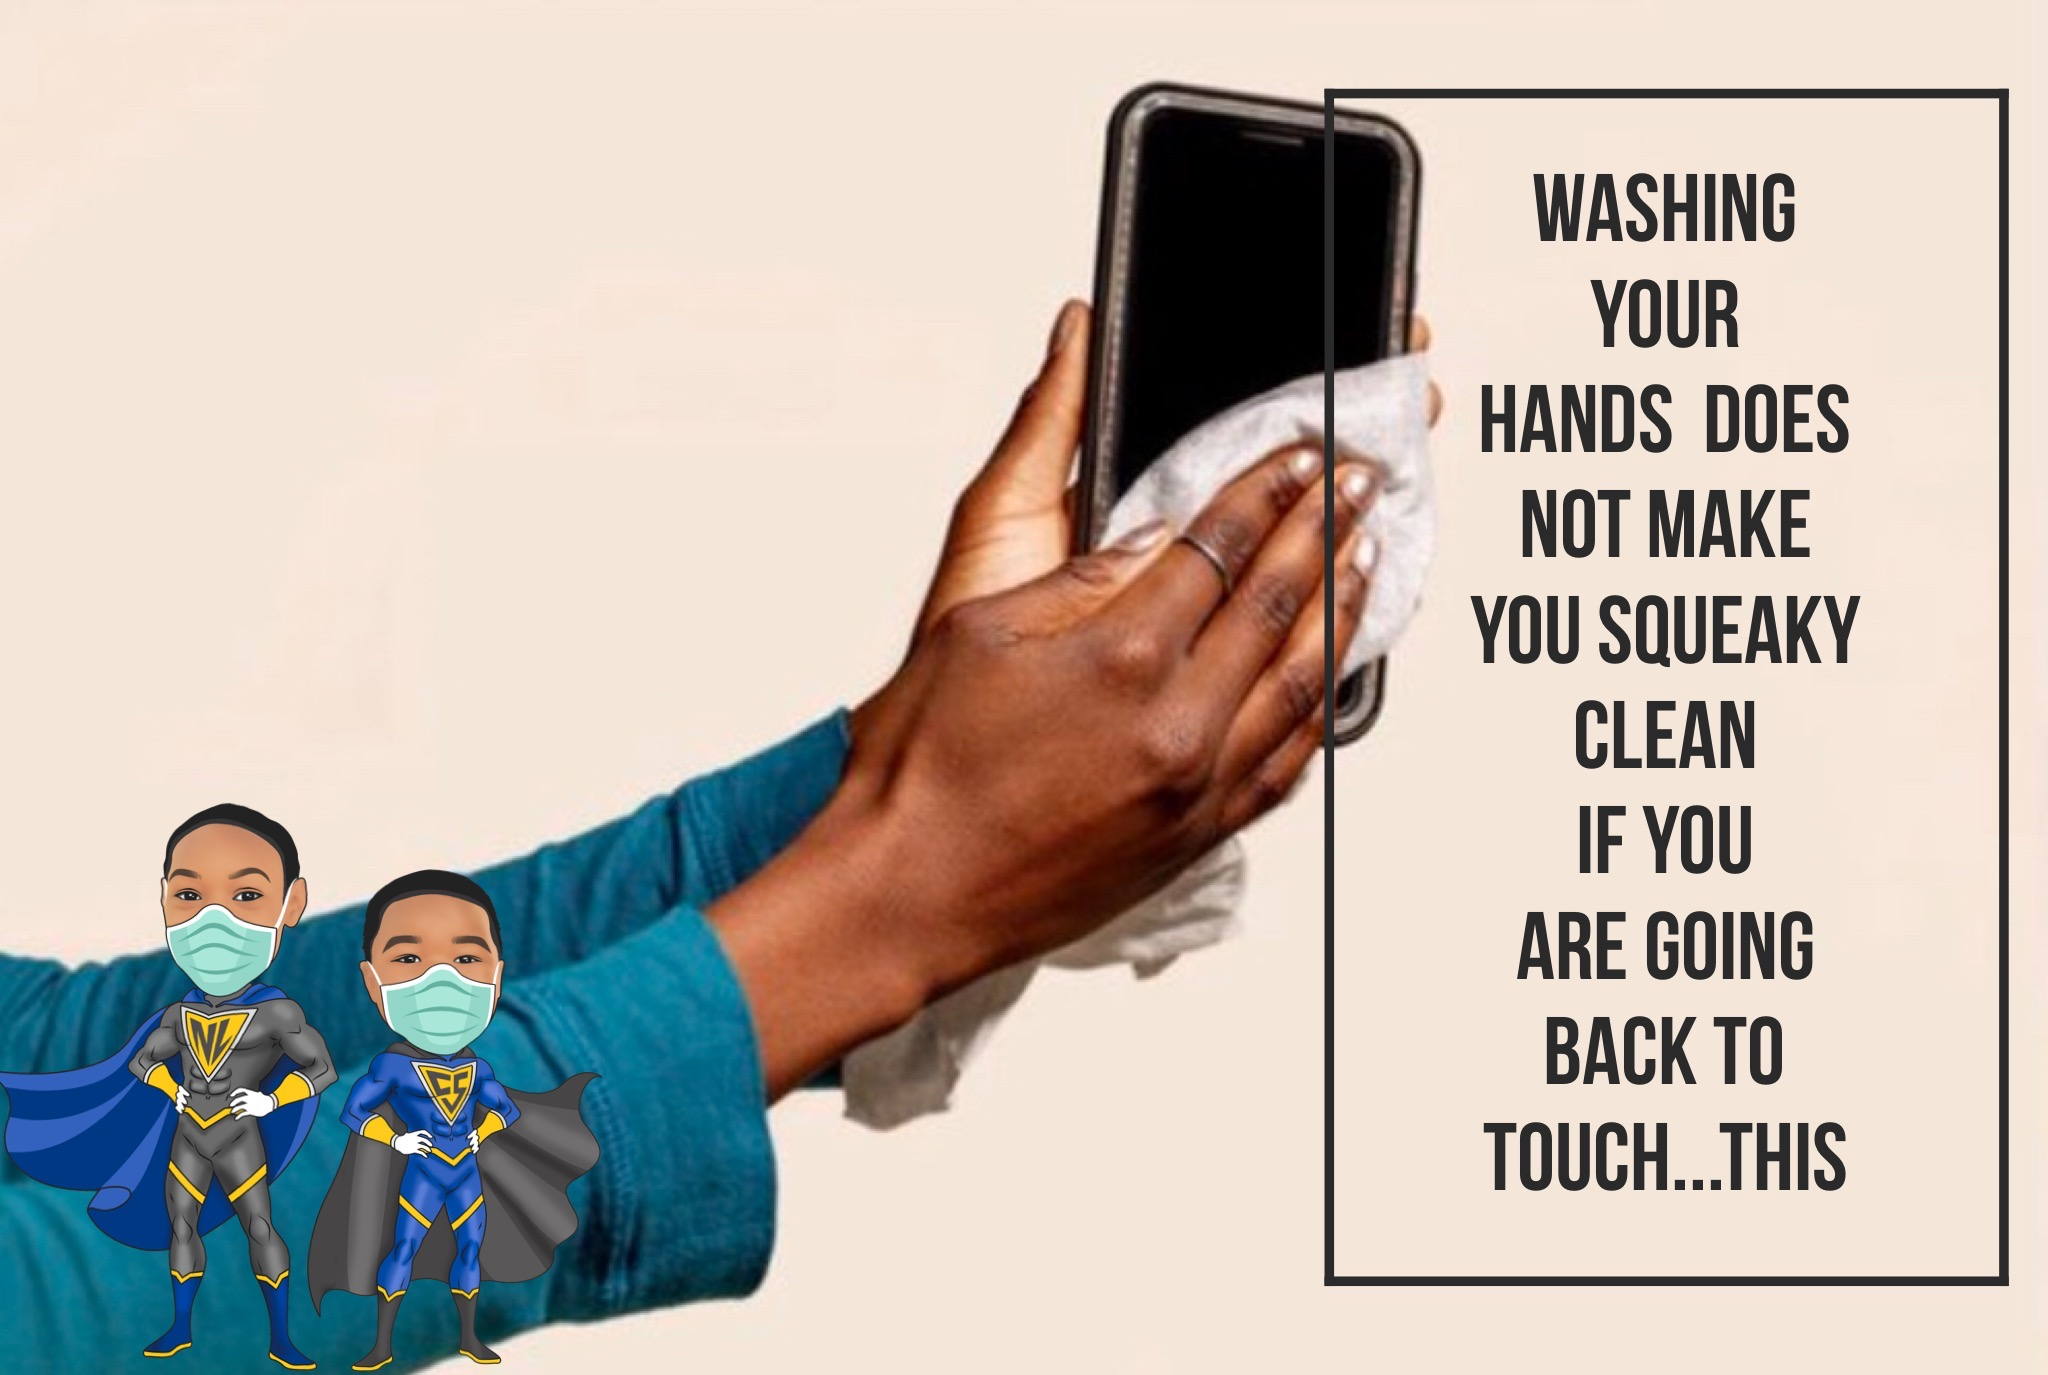 WASH your hands and phone DAILY!